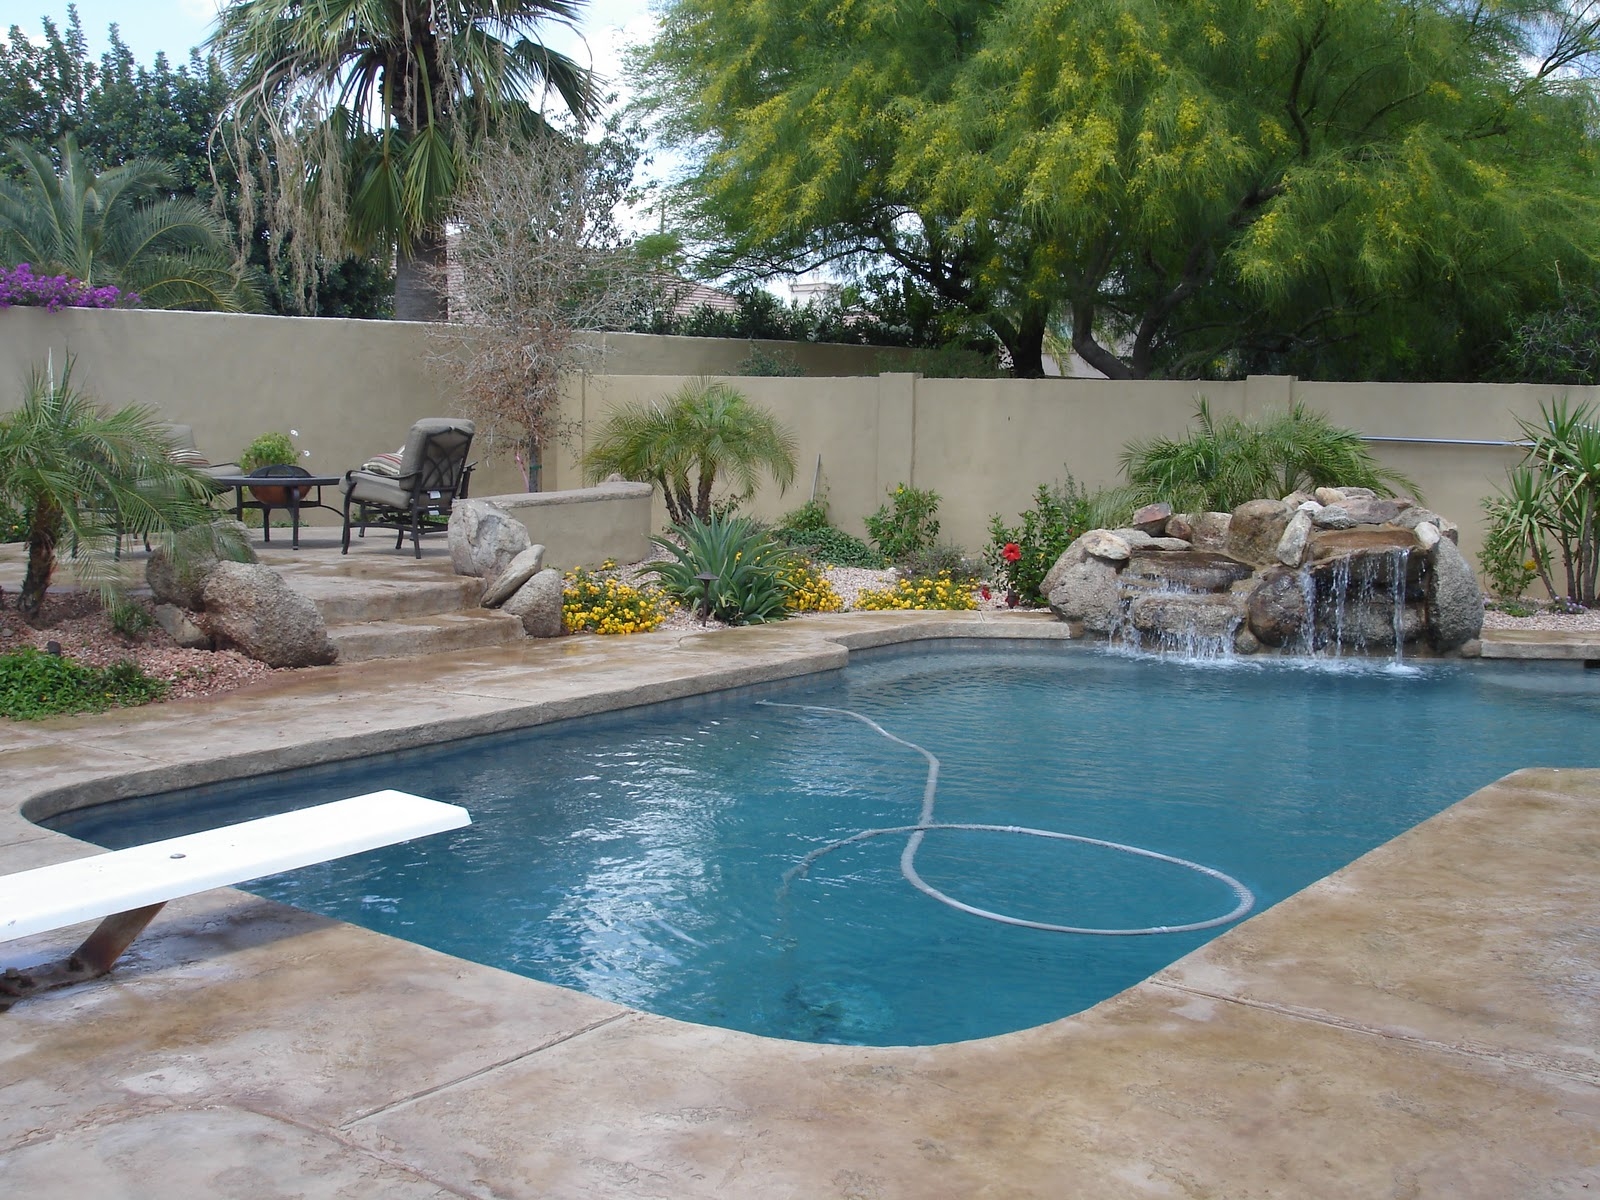 Empire concrete designs new pool deck and raised patio for Outside pool designs